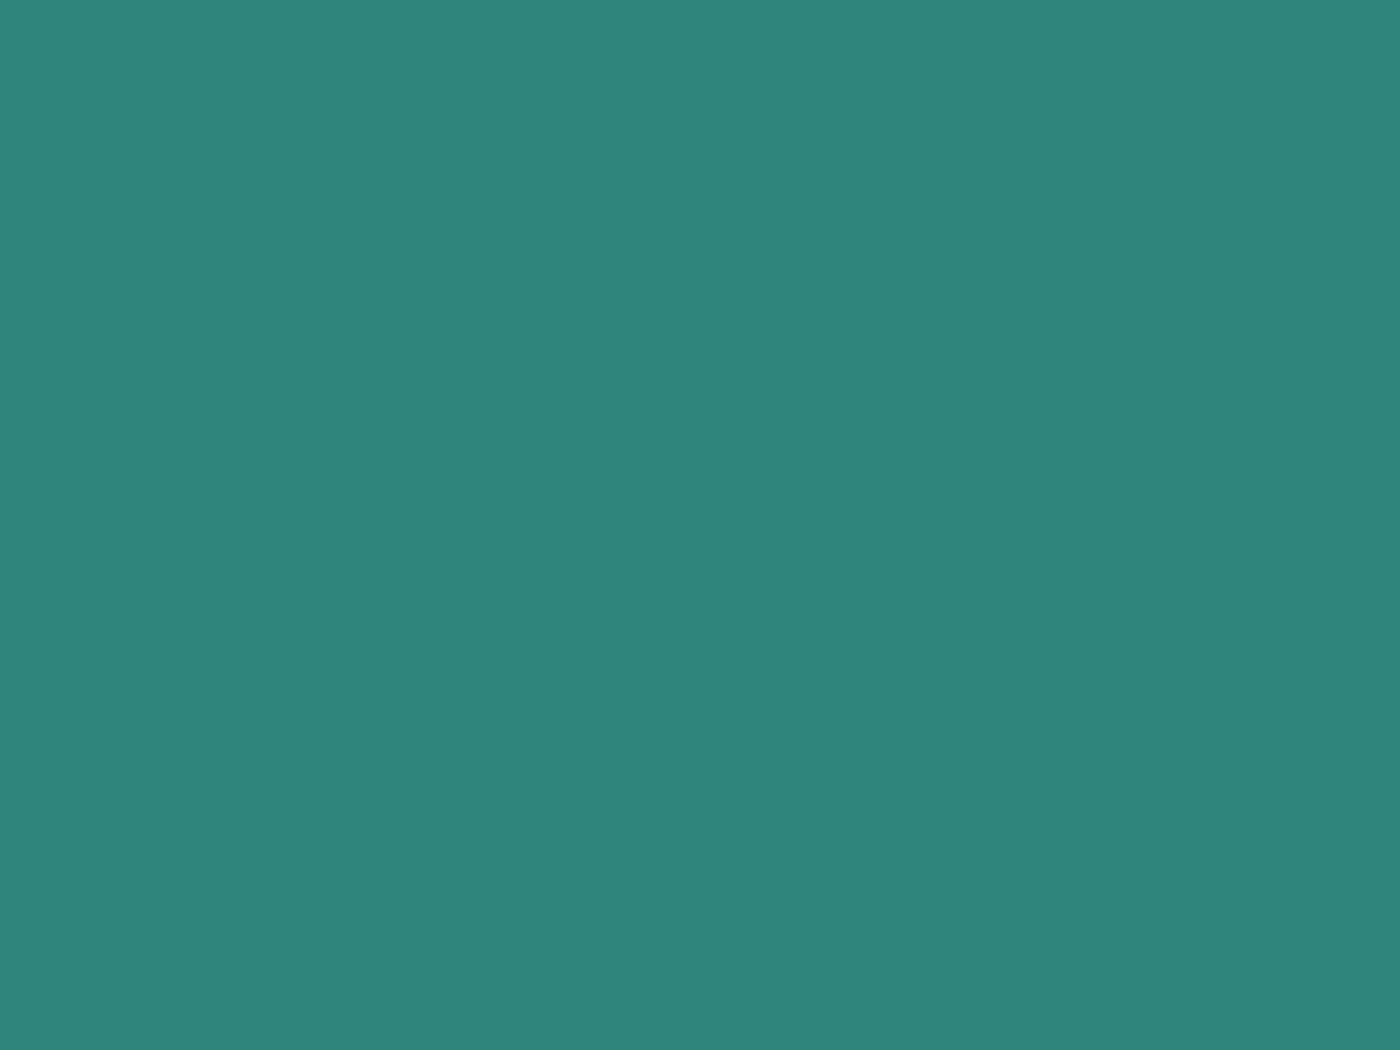 1400x1050 Celadon Green Solid Color Background